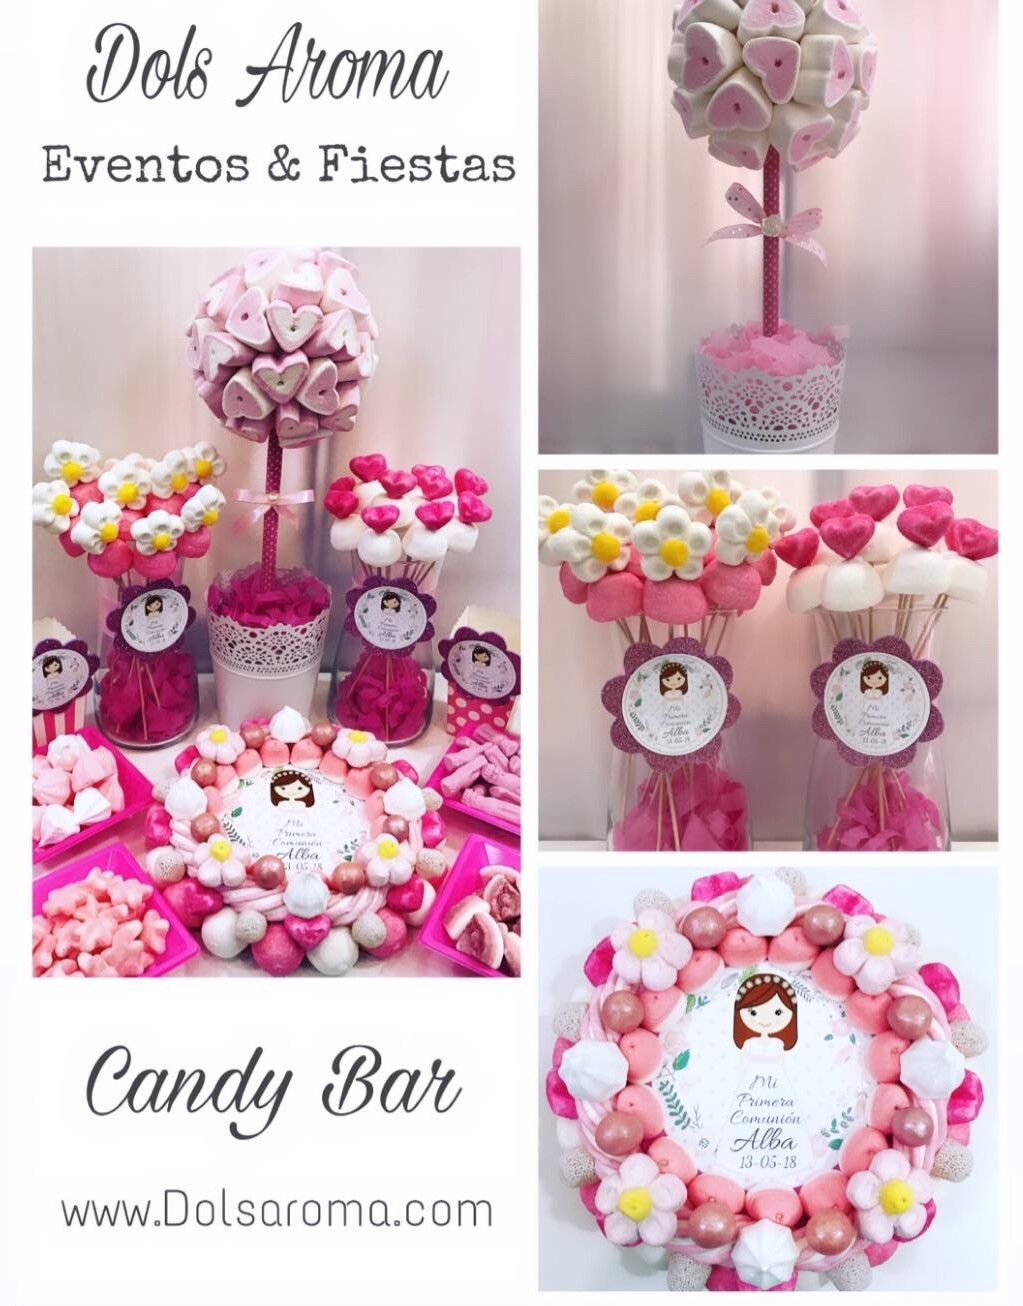 MESA DULCE/ CANDY BAR/